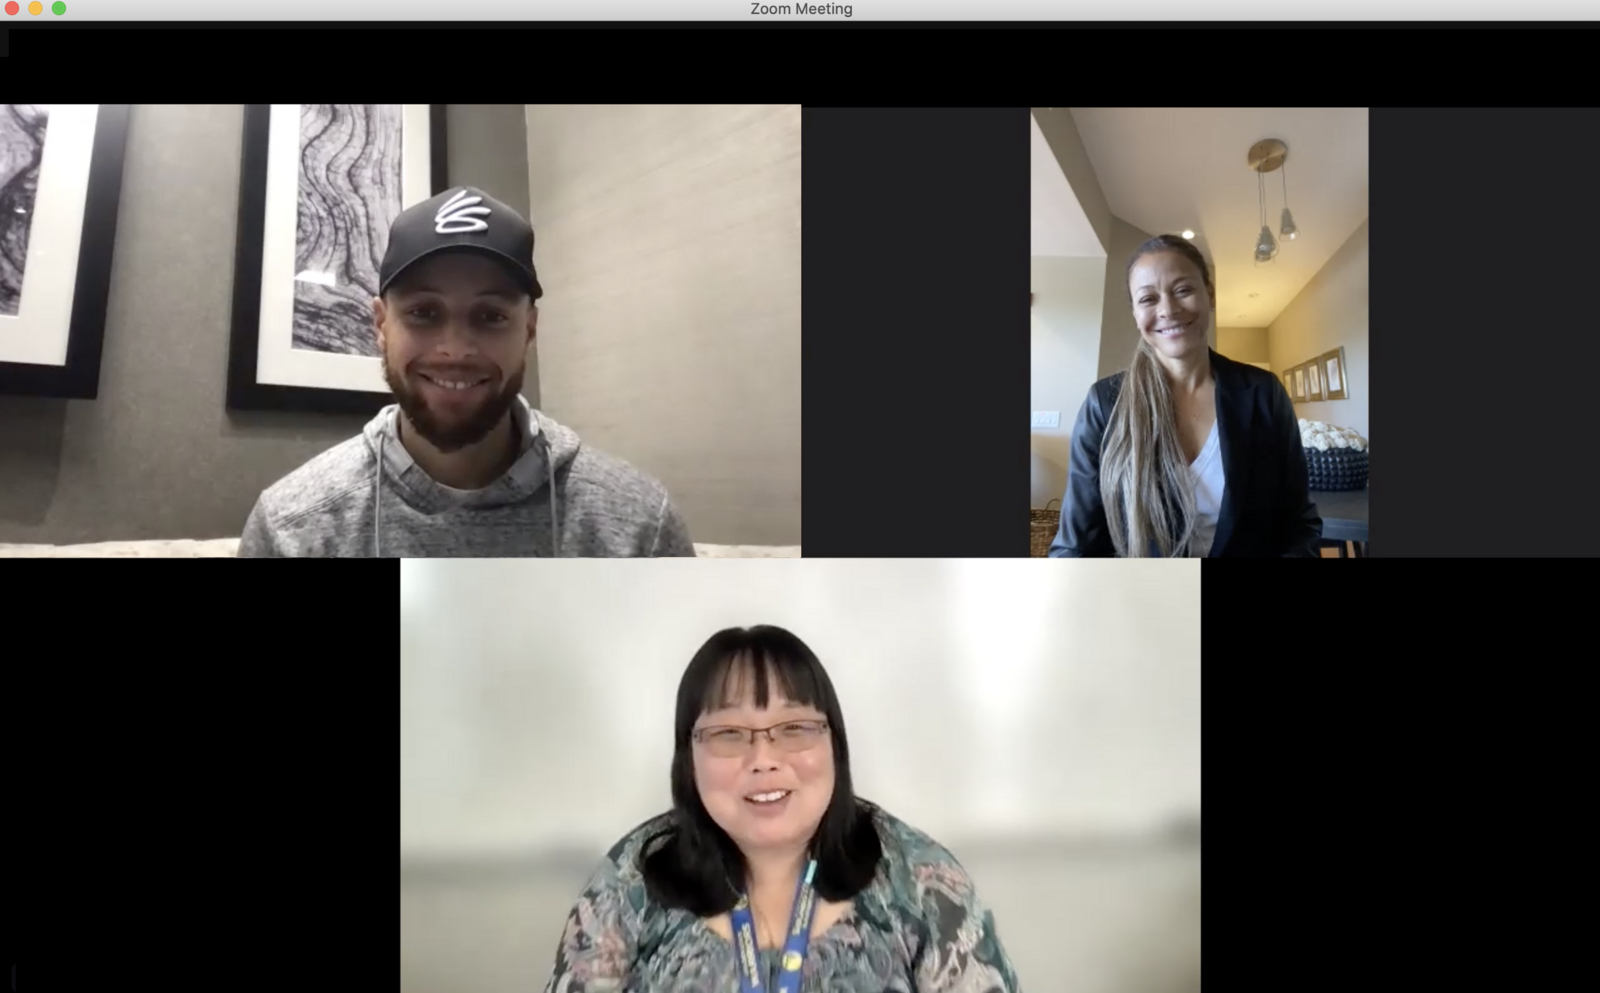 Stephen Curry (left), Sonya Curry (right), and Ann Park (bottom) on a video meeting together during Teacher Appreciation Week.